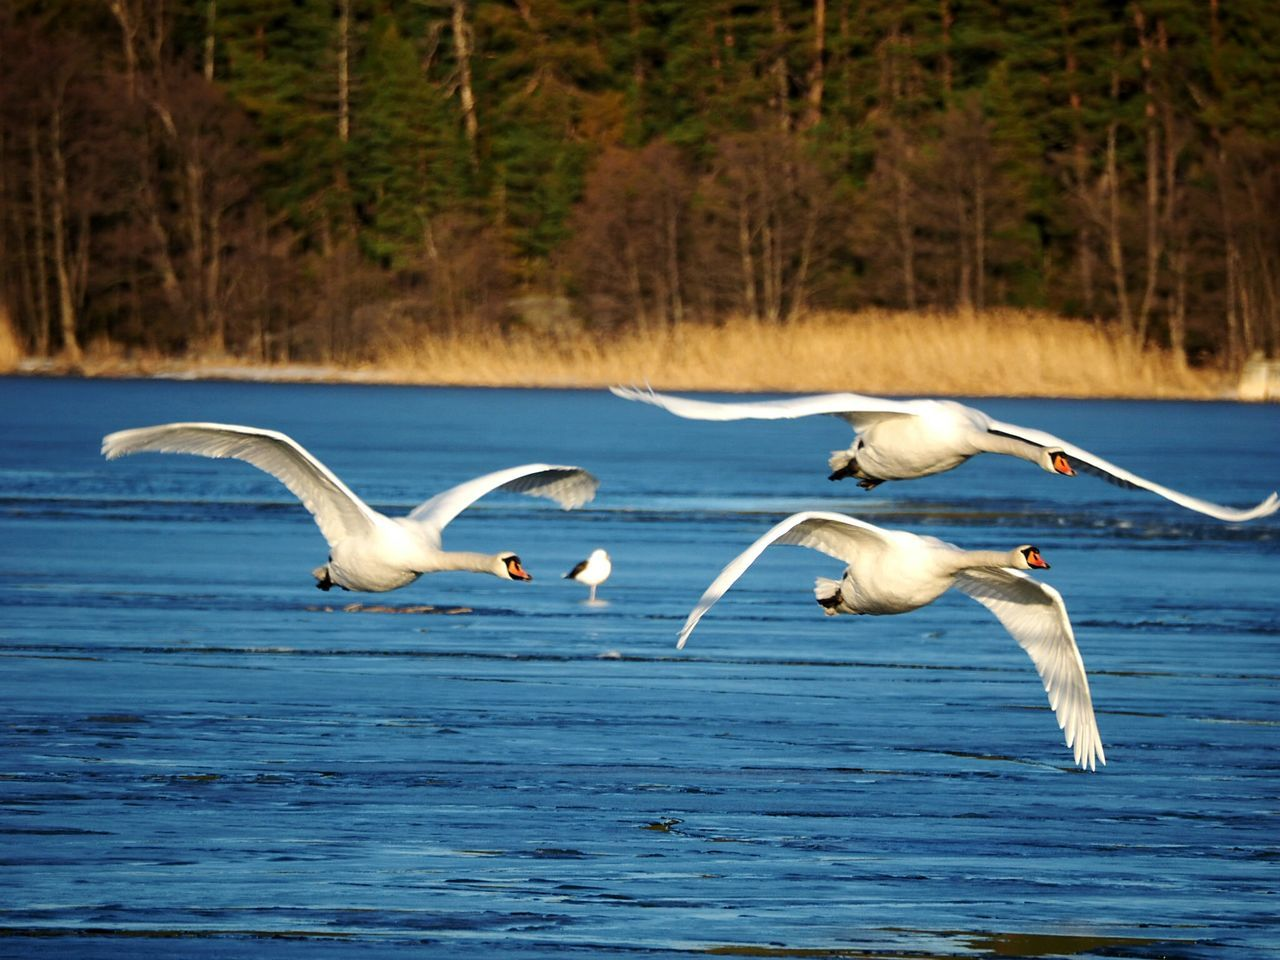 Bird Flying Spread Wings Nature Reserve Animal Themes Winter Nature Outside Spreading Wings Swan Sunny Winter Day Beautiful Nature Animals In The Wild Animal Wildlife Scenics Outdoors Beauty In Nature Nature Beauty In Nature No People Nature Animal Sea Bird Swans In Flight